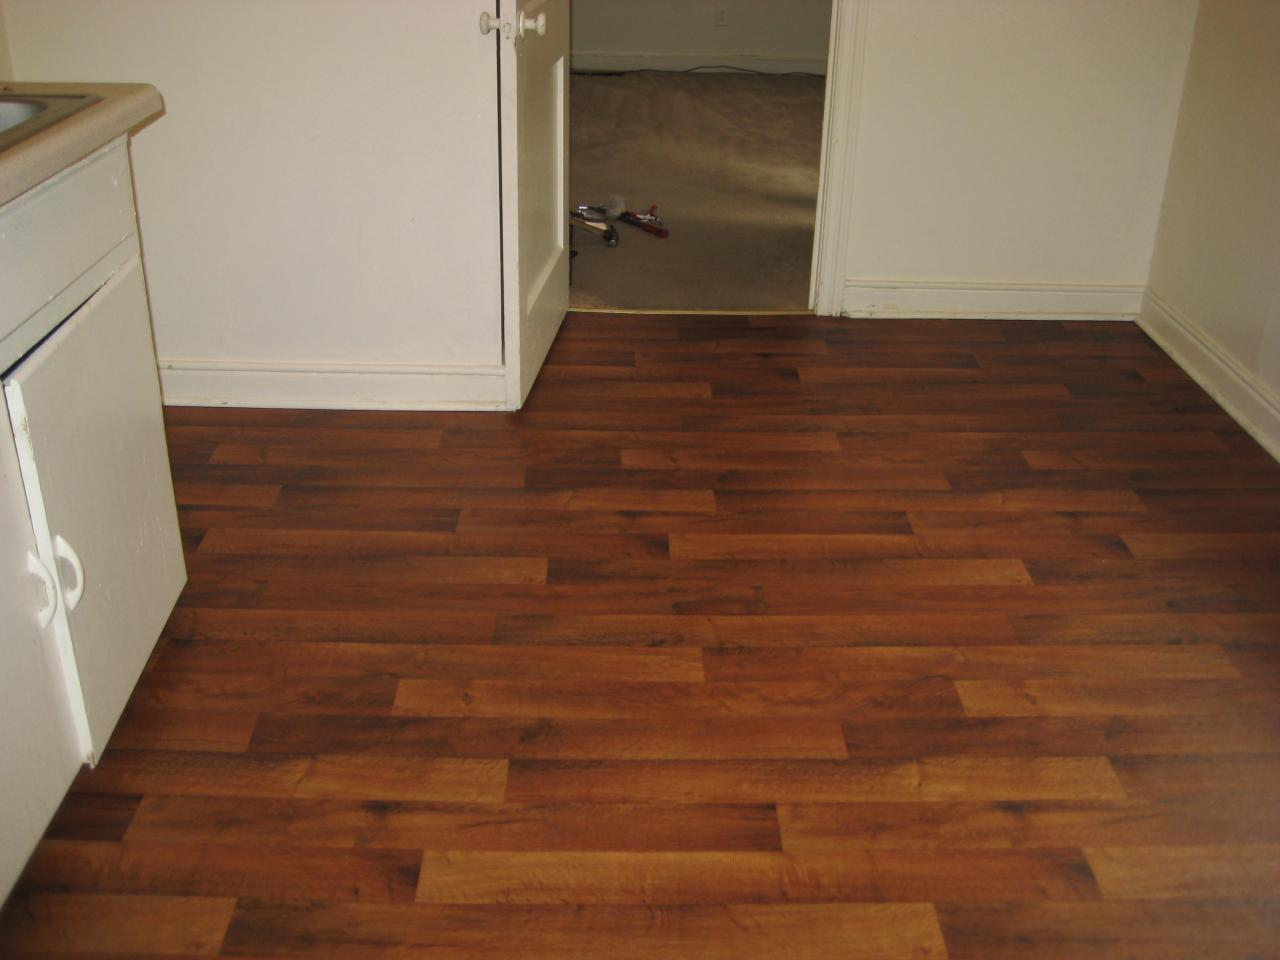 Linoleum Floor Covering : ... in your home s appearance installation linoleum old linoleum floor